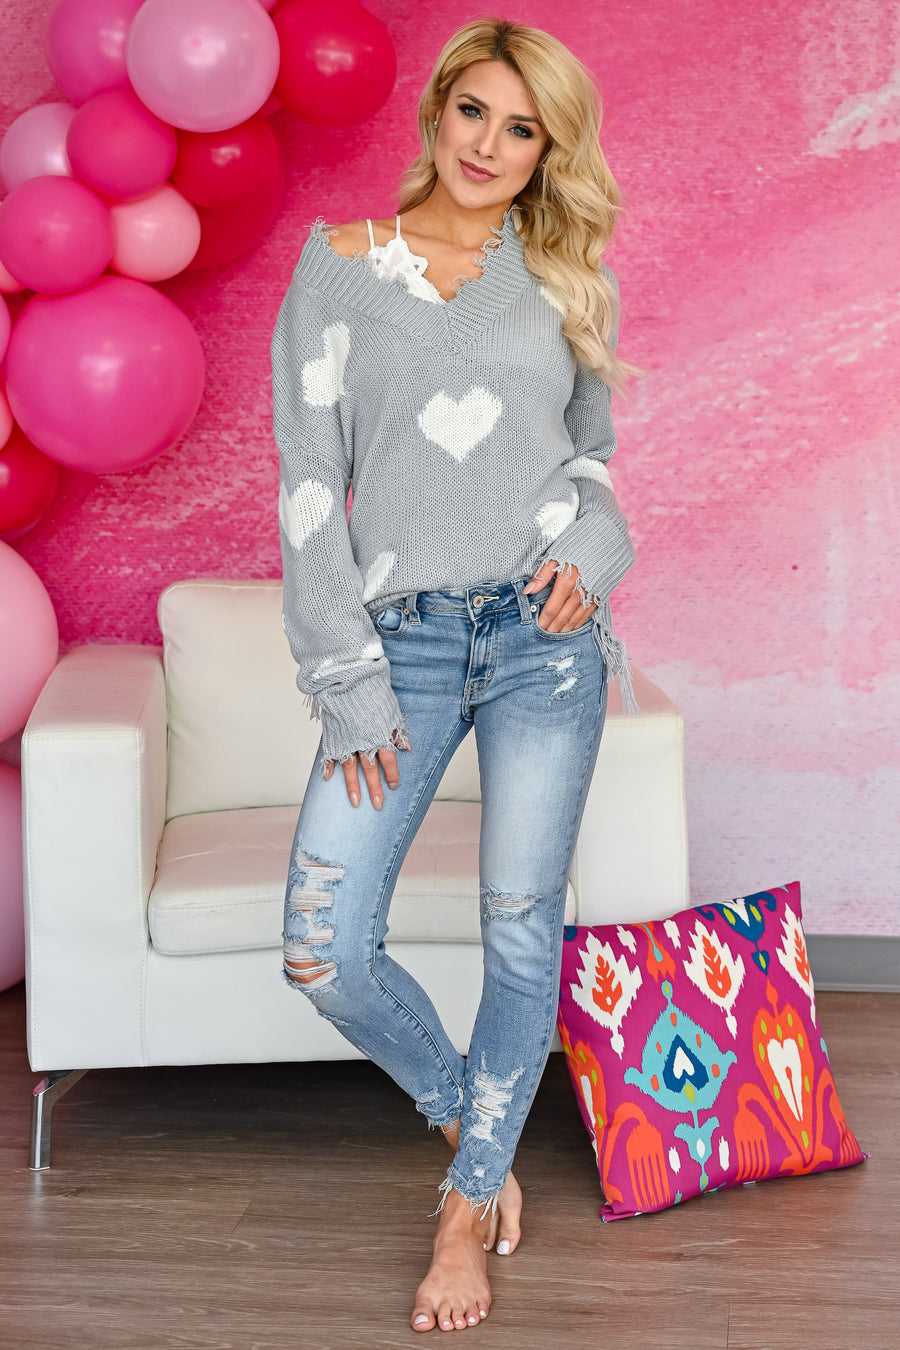 Love Lockdown Heart Sweater - Grey womens trendy long sleeve frayed detailed v-neck heart print sweater closet candy sitting